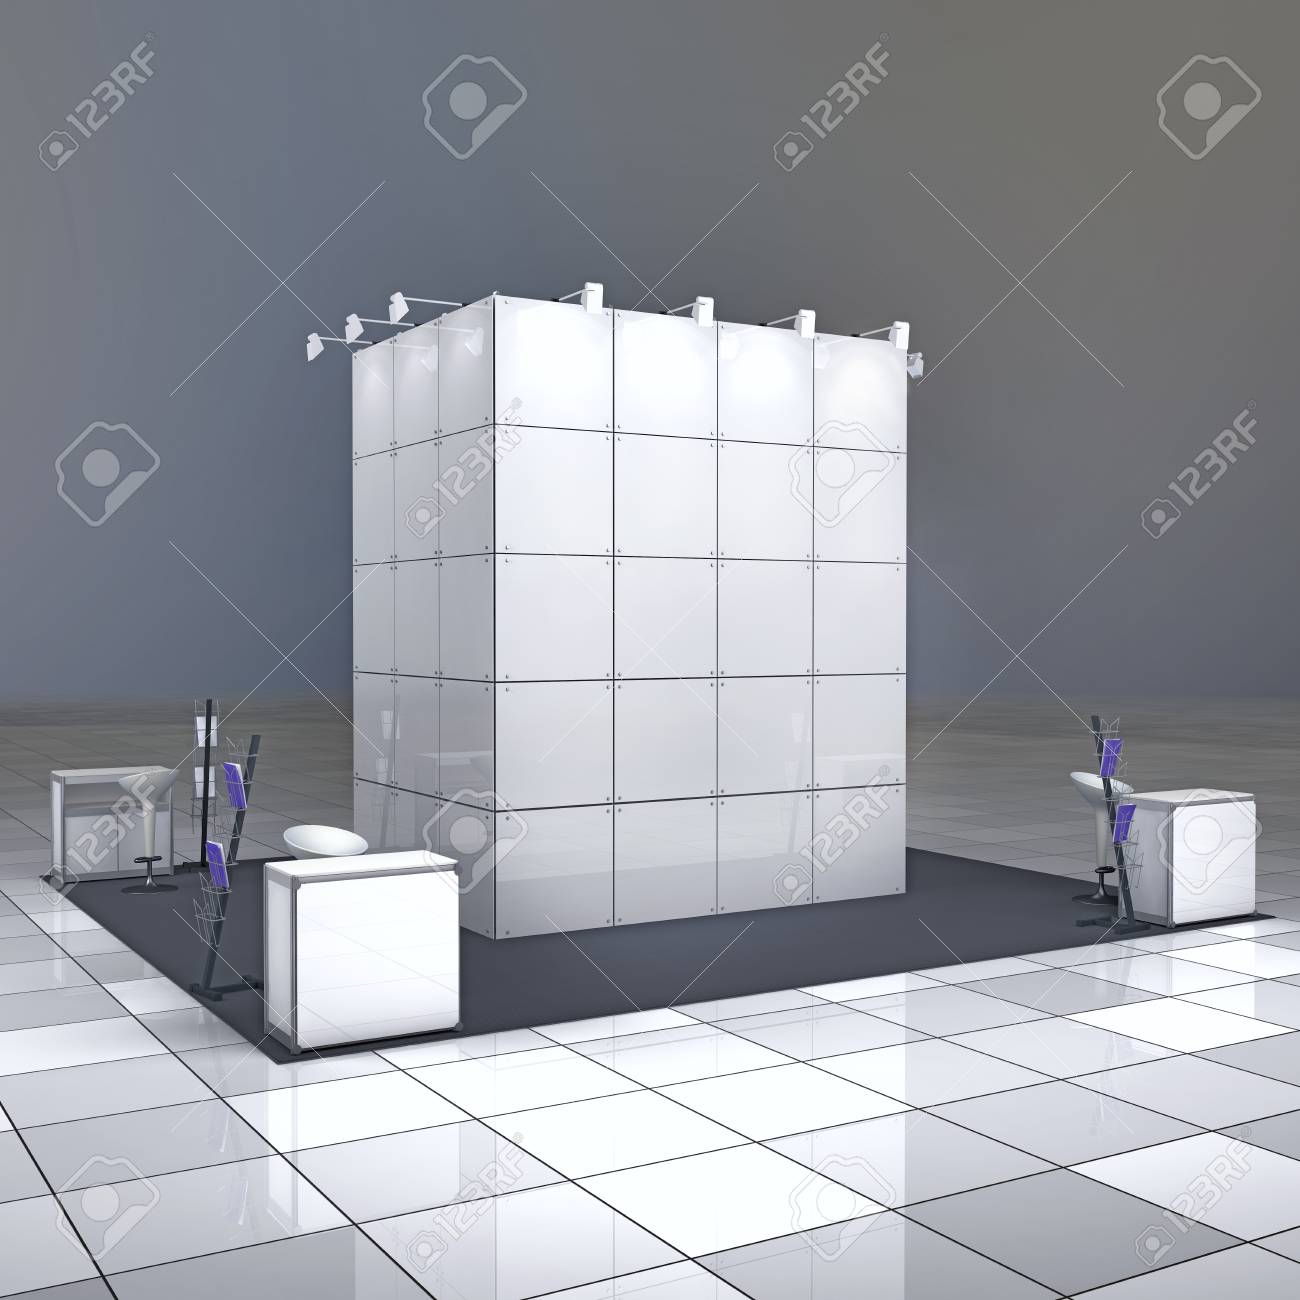 Exhibition Booth Blank : Trade show booth box stock illustration illustration of display